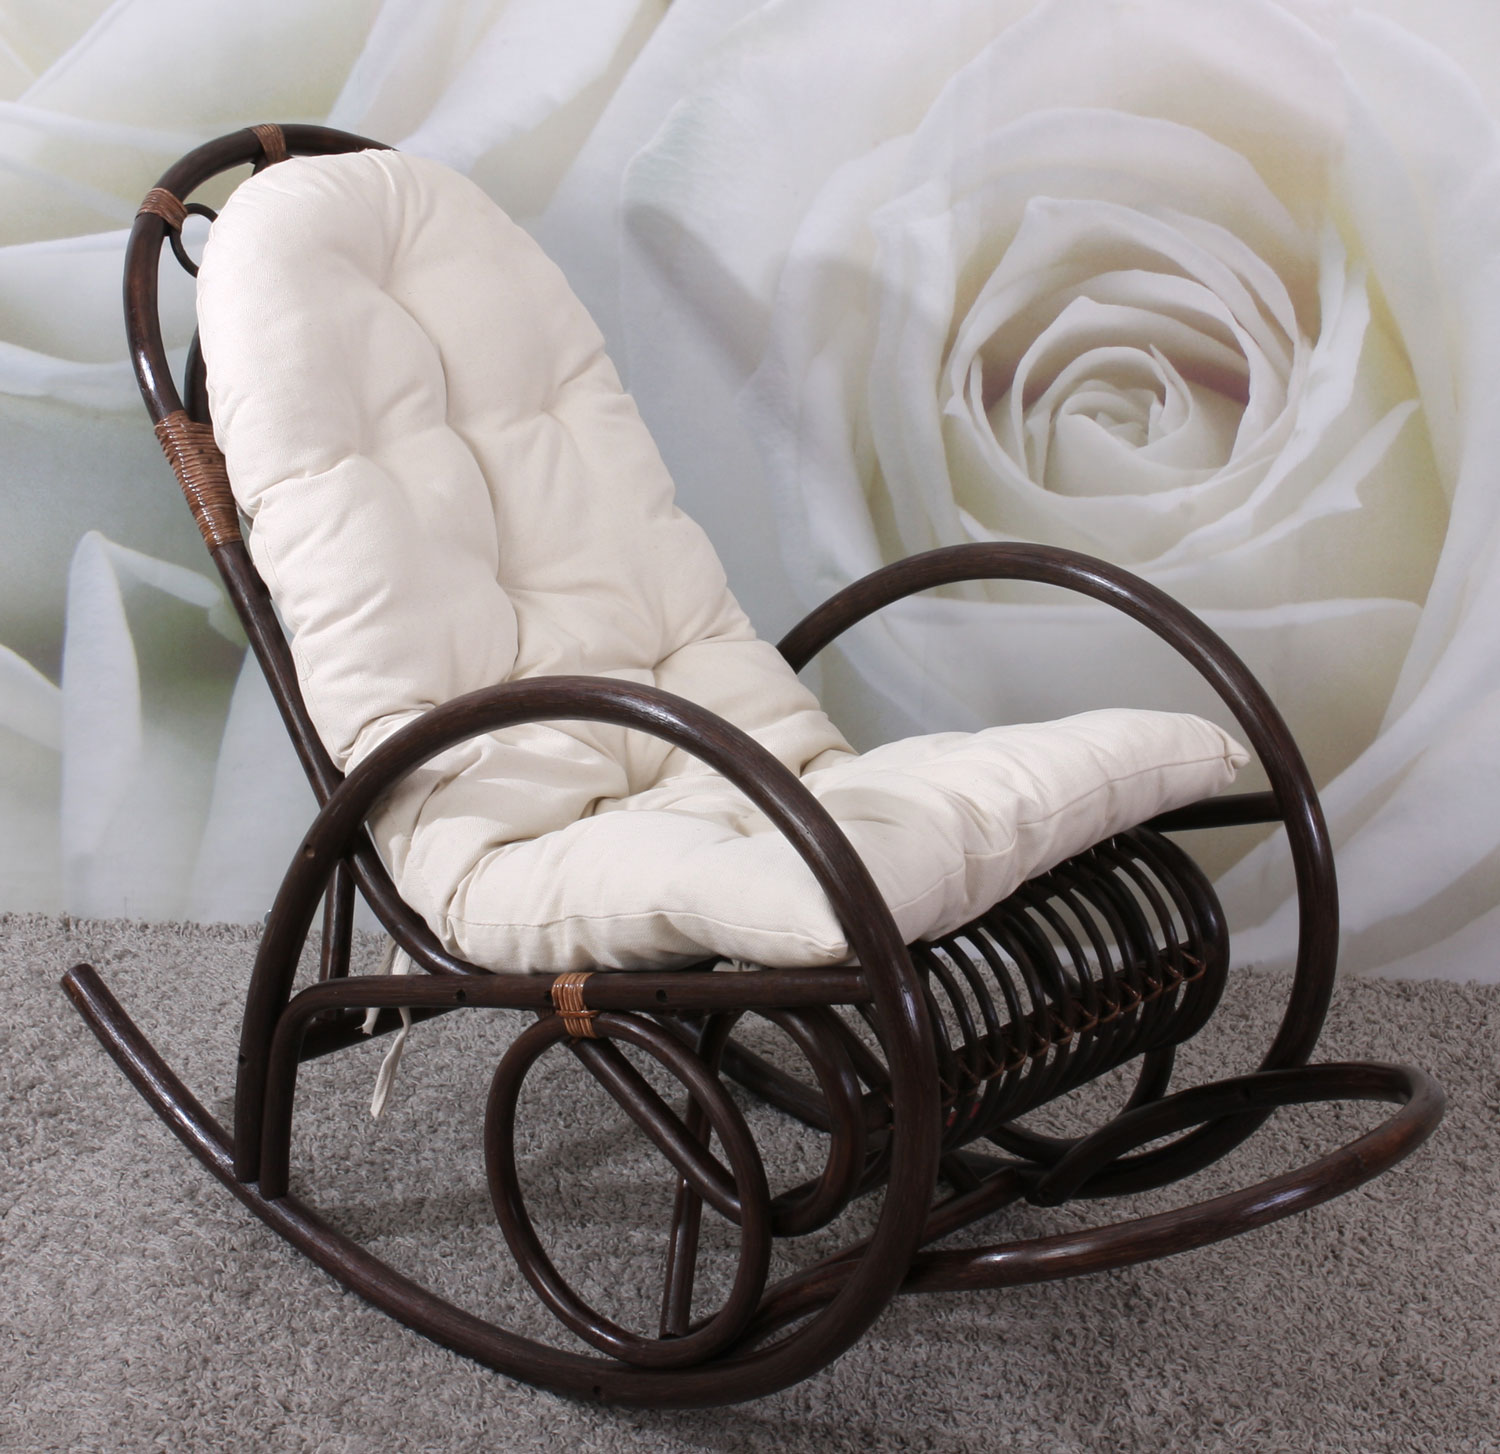 rocking chair fauteuil bascule derby bois marron avec coussin ebay. Black Bedroom Furniture Sets. Home Design Ideas